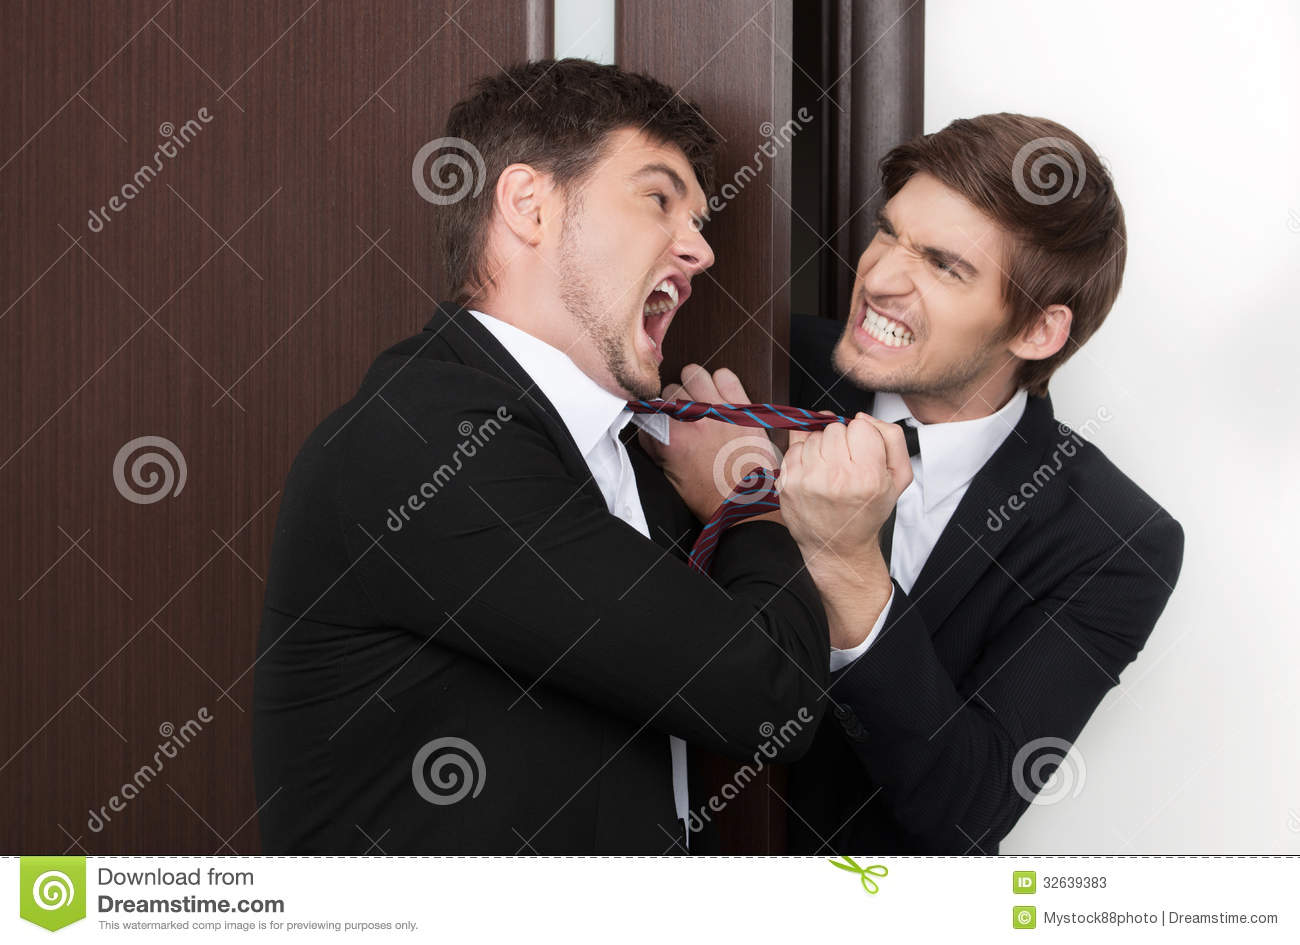 Office Conflict Stock Photos